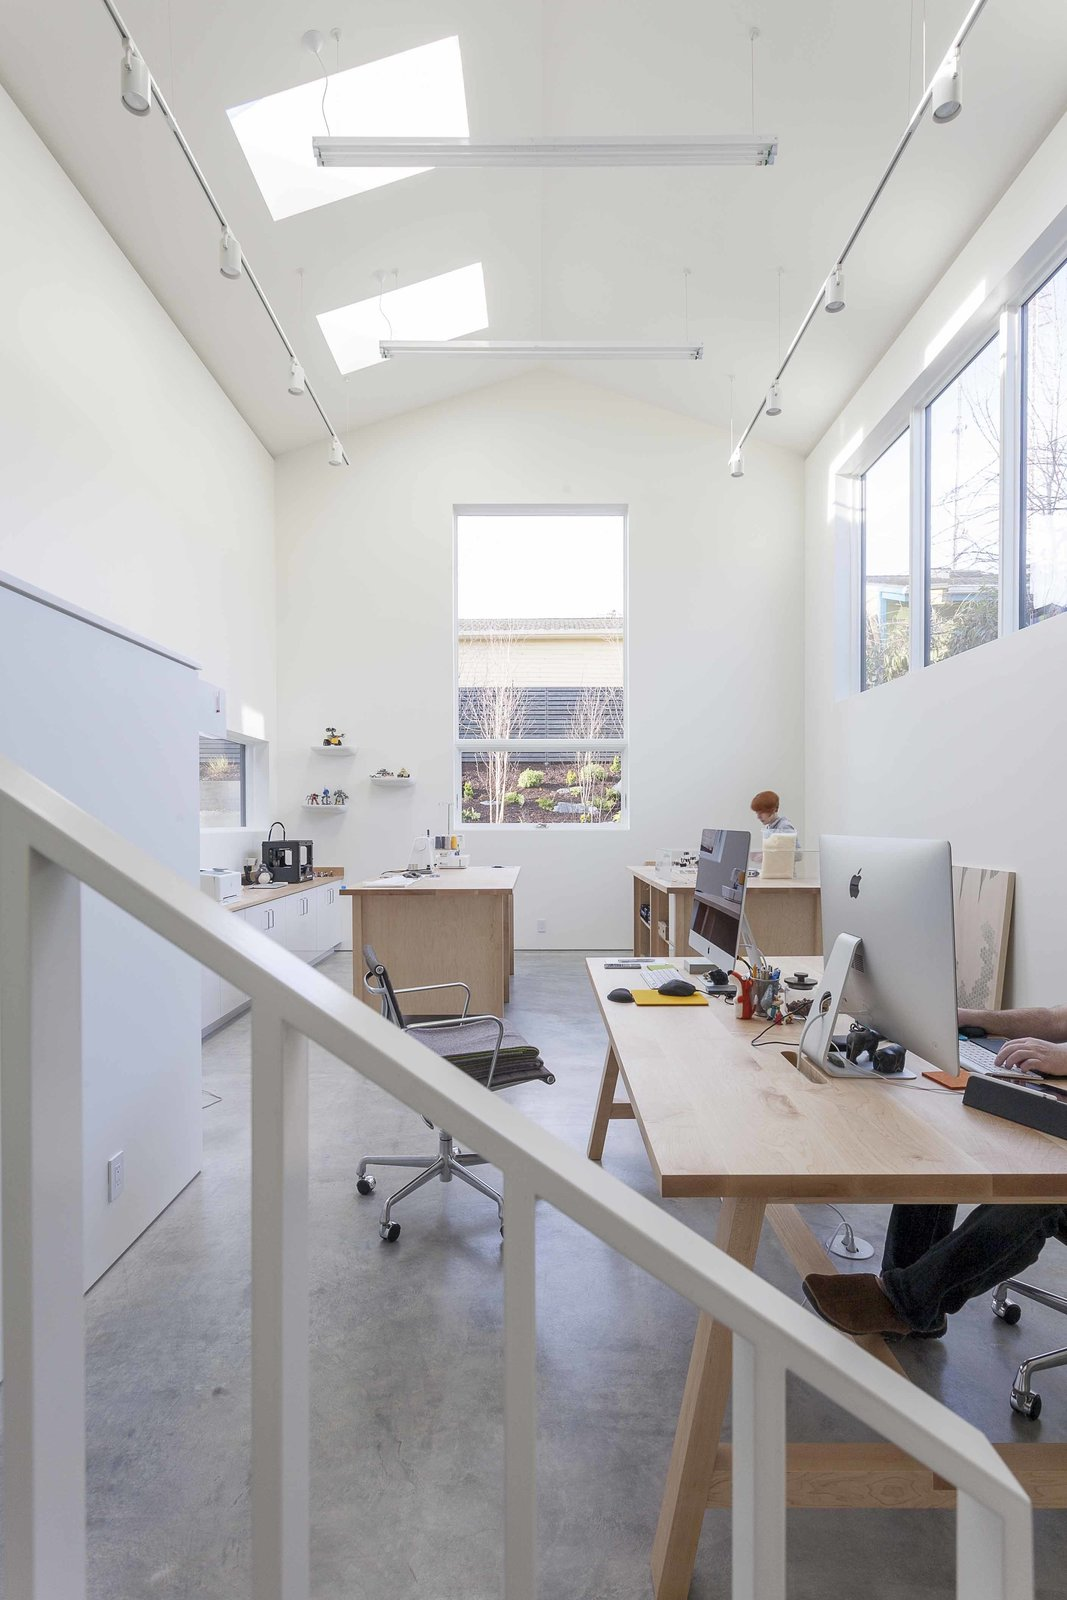 "The double-height artist studio showcases custom pieces by Dovetail, like a metal handrail and maple work tables, as well as Eames Aluminum Group chairs. The goal for the home, says Heliotrope principal Mike Mora, was to, ""Create an interior space akin to an art gallery with white wall surfaces adequate to hang art.""  Central District Residence by Sarah Akkoush"